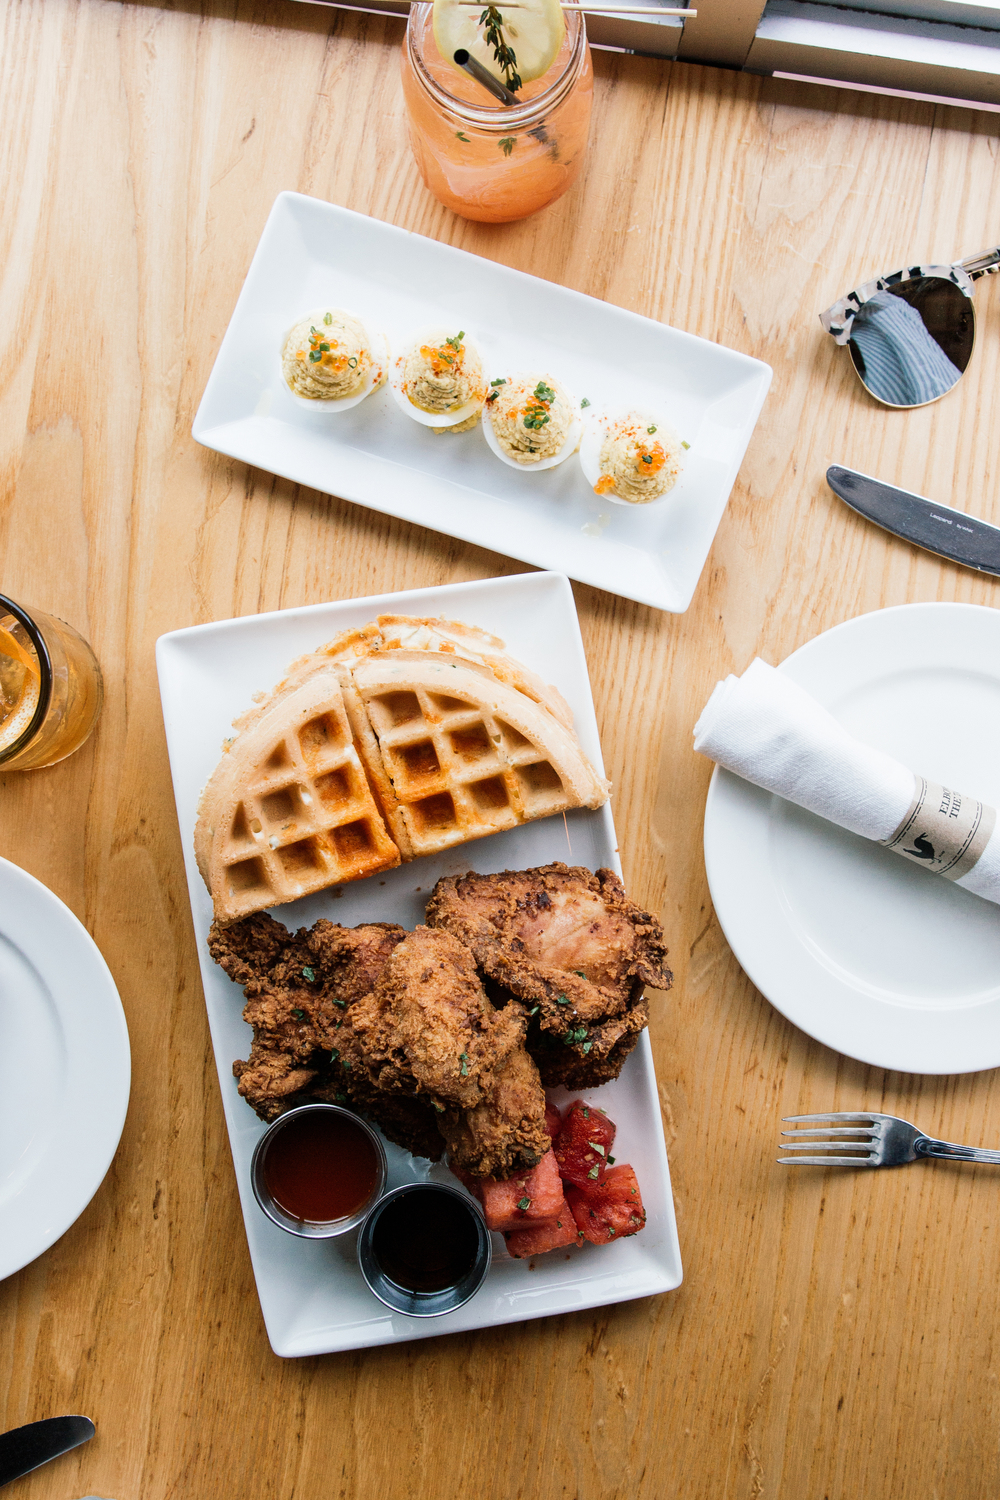 Brunch at  Yardbird Southern Table & Bar  (recommended by  Porter and Sail )